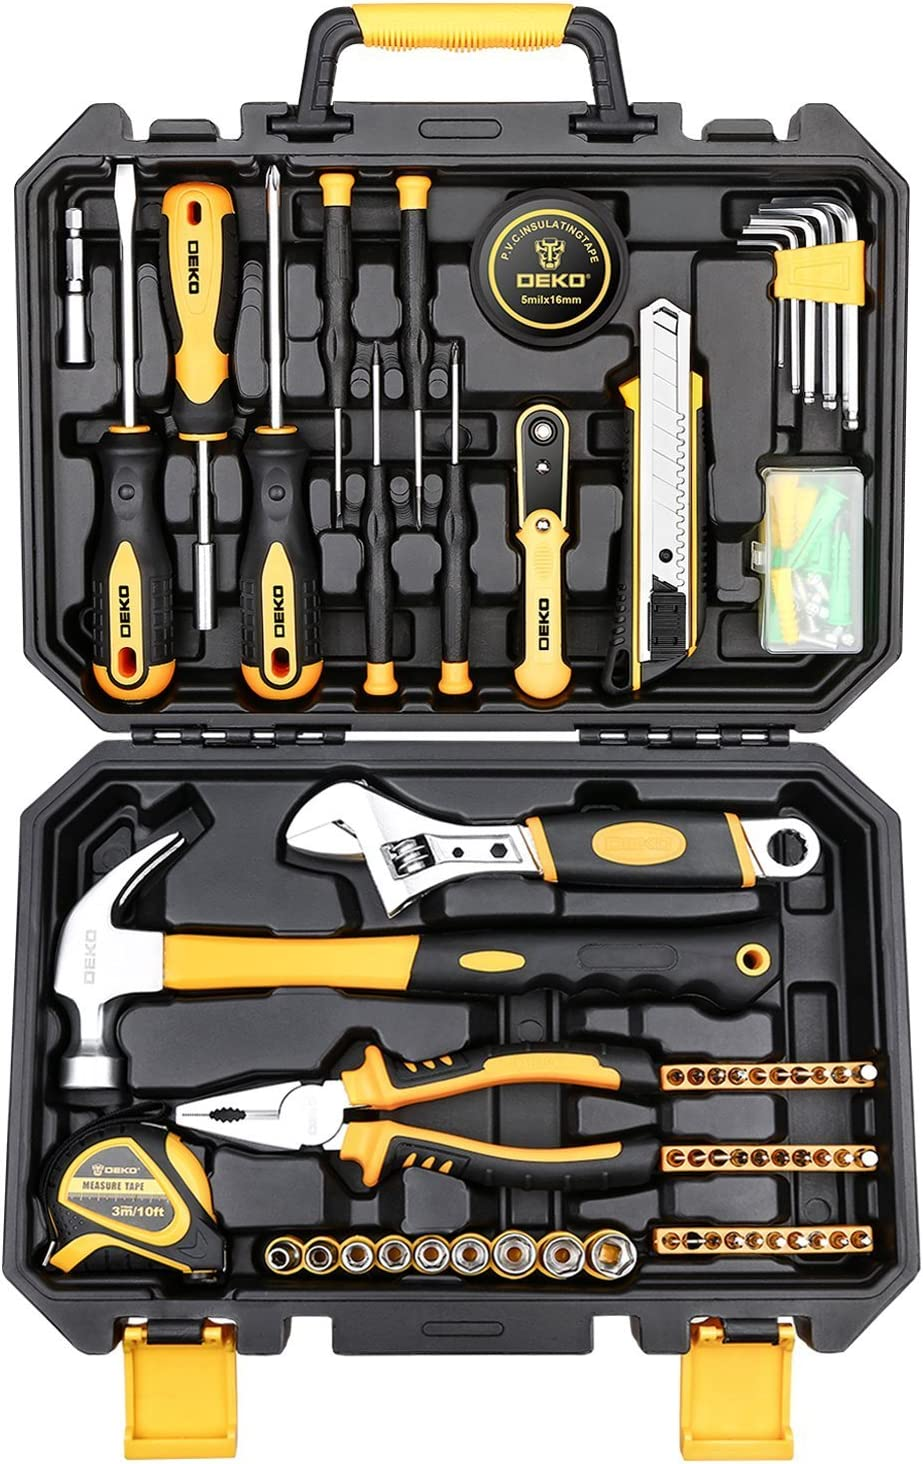 DEKOPRO 100 Piece Home Repair Tool SetS,Plastic Tool Box Storage with General Household Hand Tool Kit